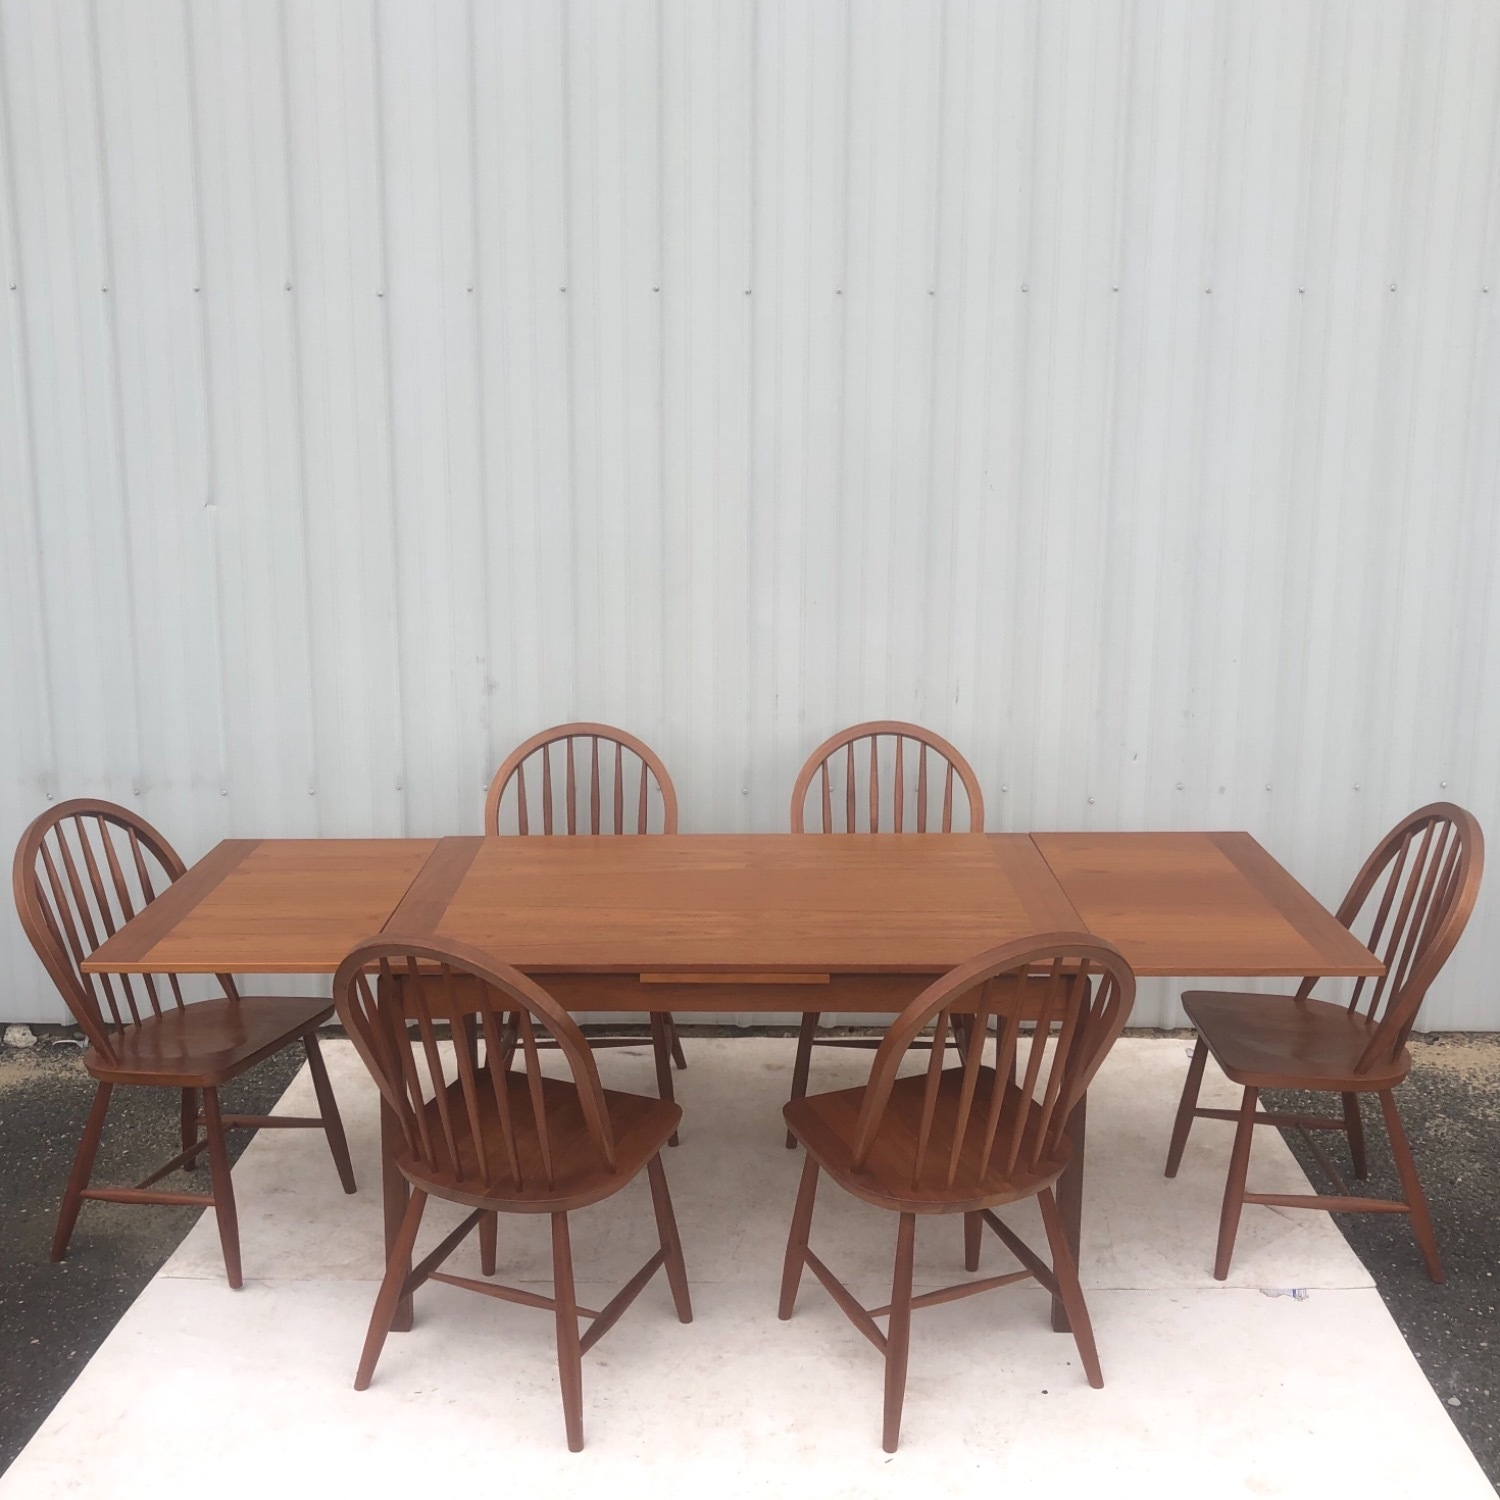 Vintage Modern Dining Set w/ Six Chairs - image-1